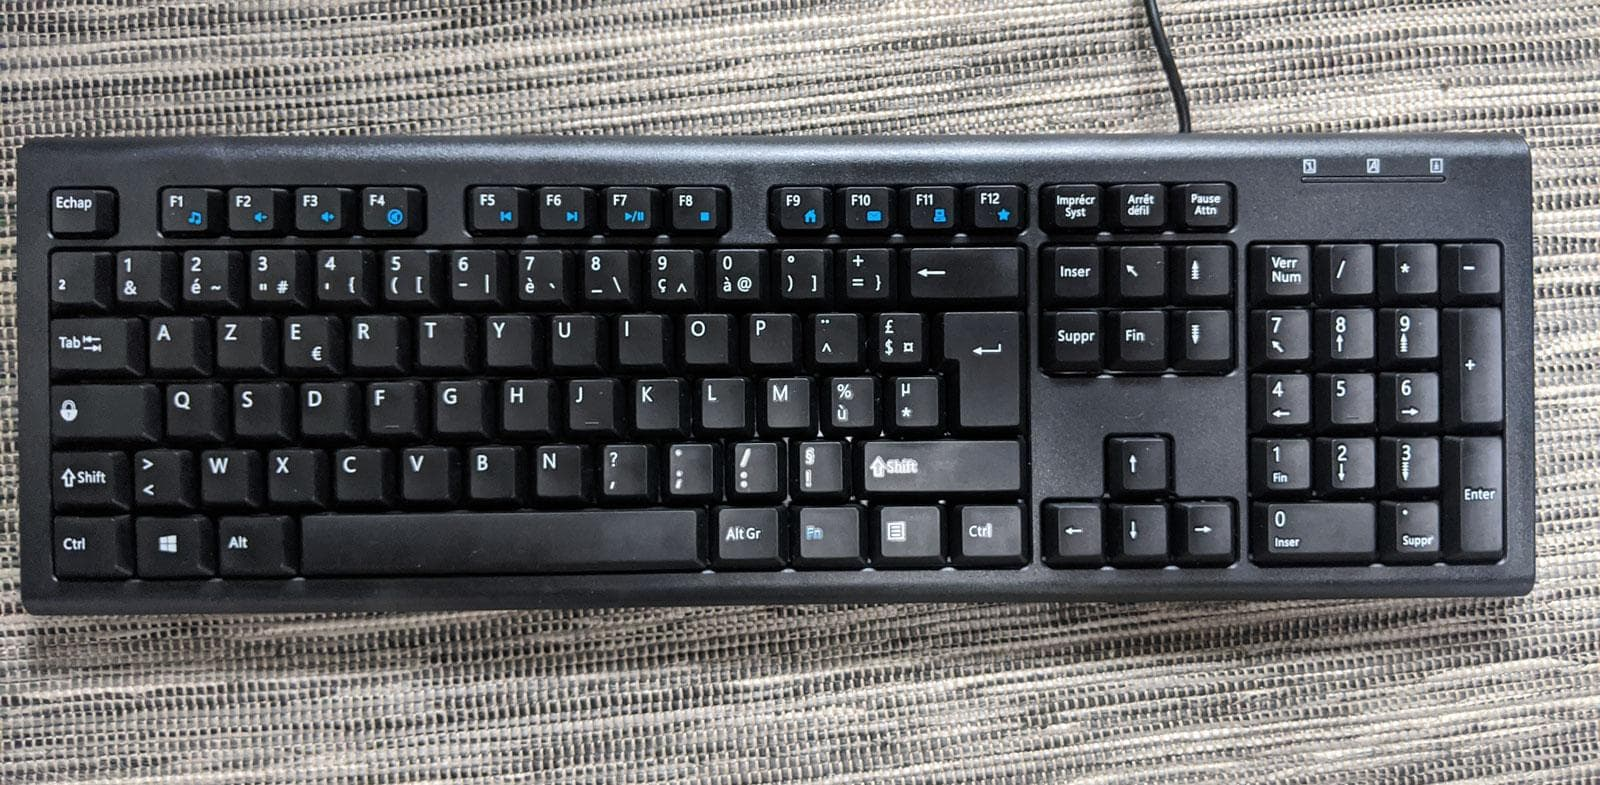 Photo of my AZERTY keyboard